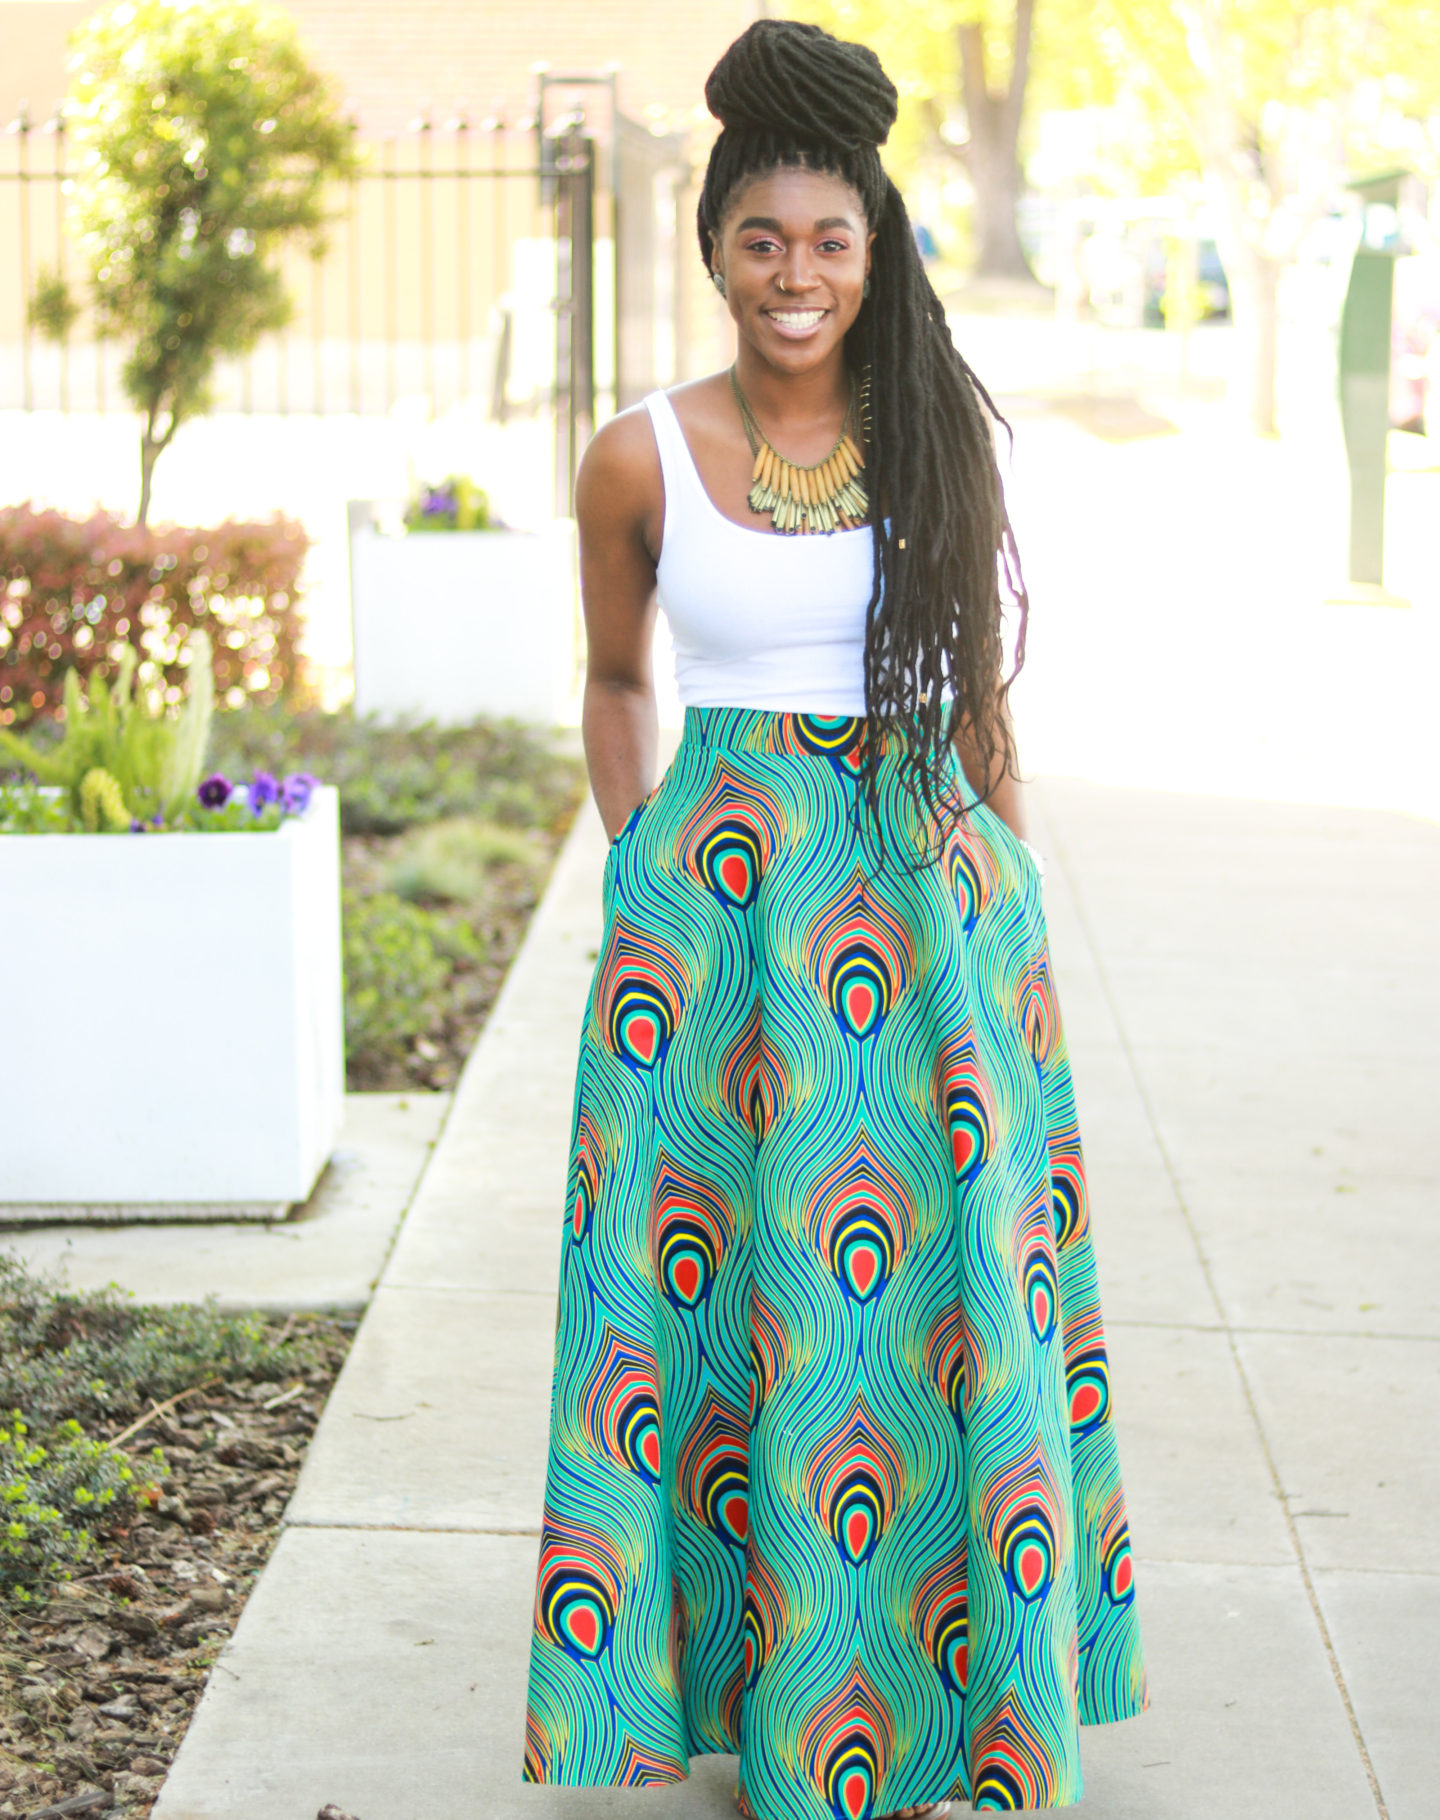 f007ce9ed0 DIY Half Circle Skirt with Pockets Tutorial Maxi Midi Ankara African Wax  Print ...